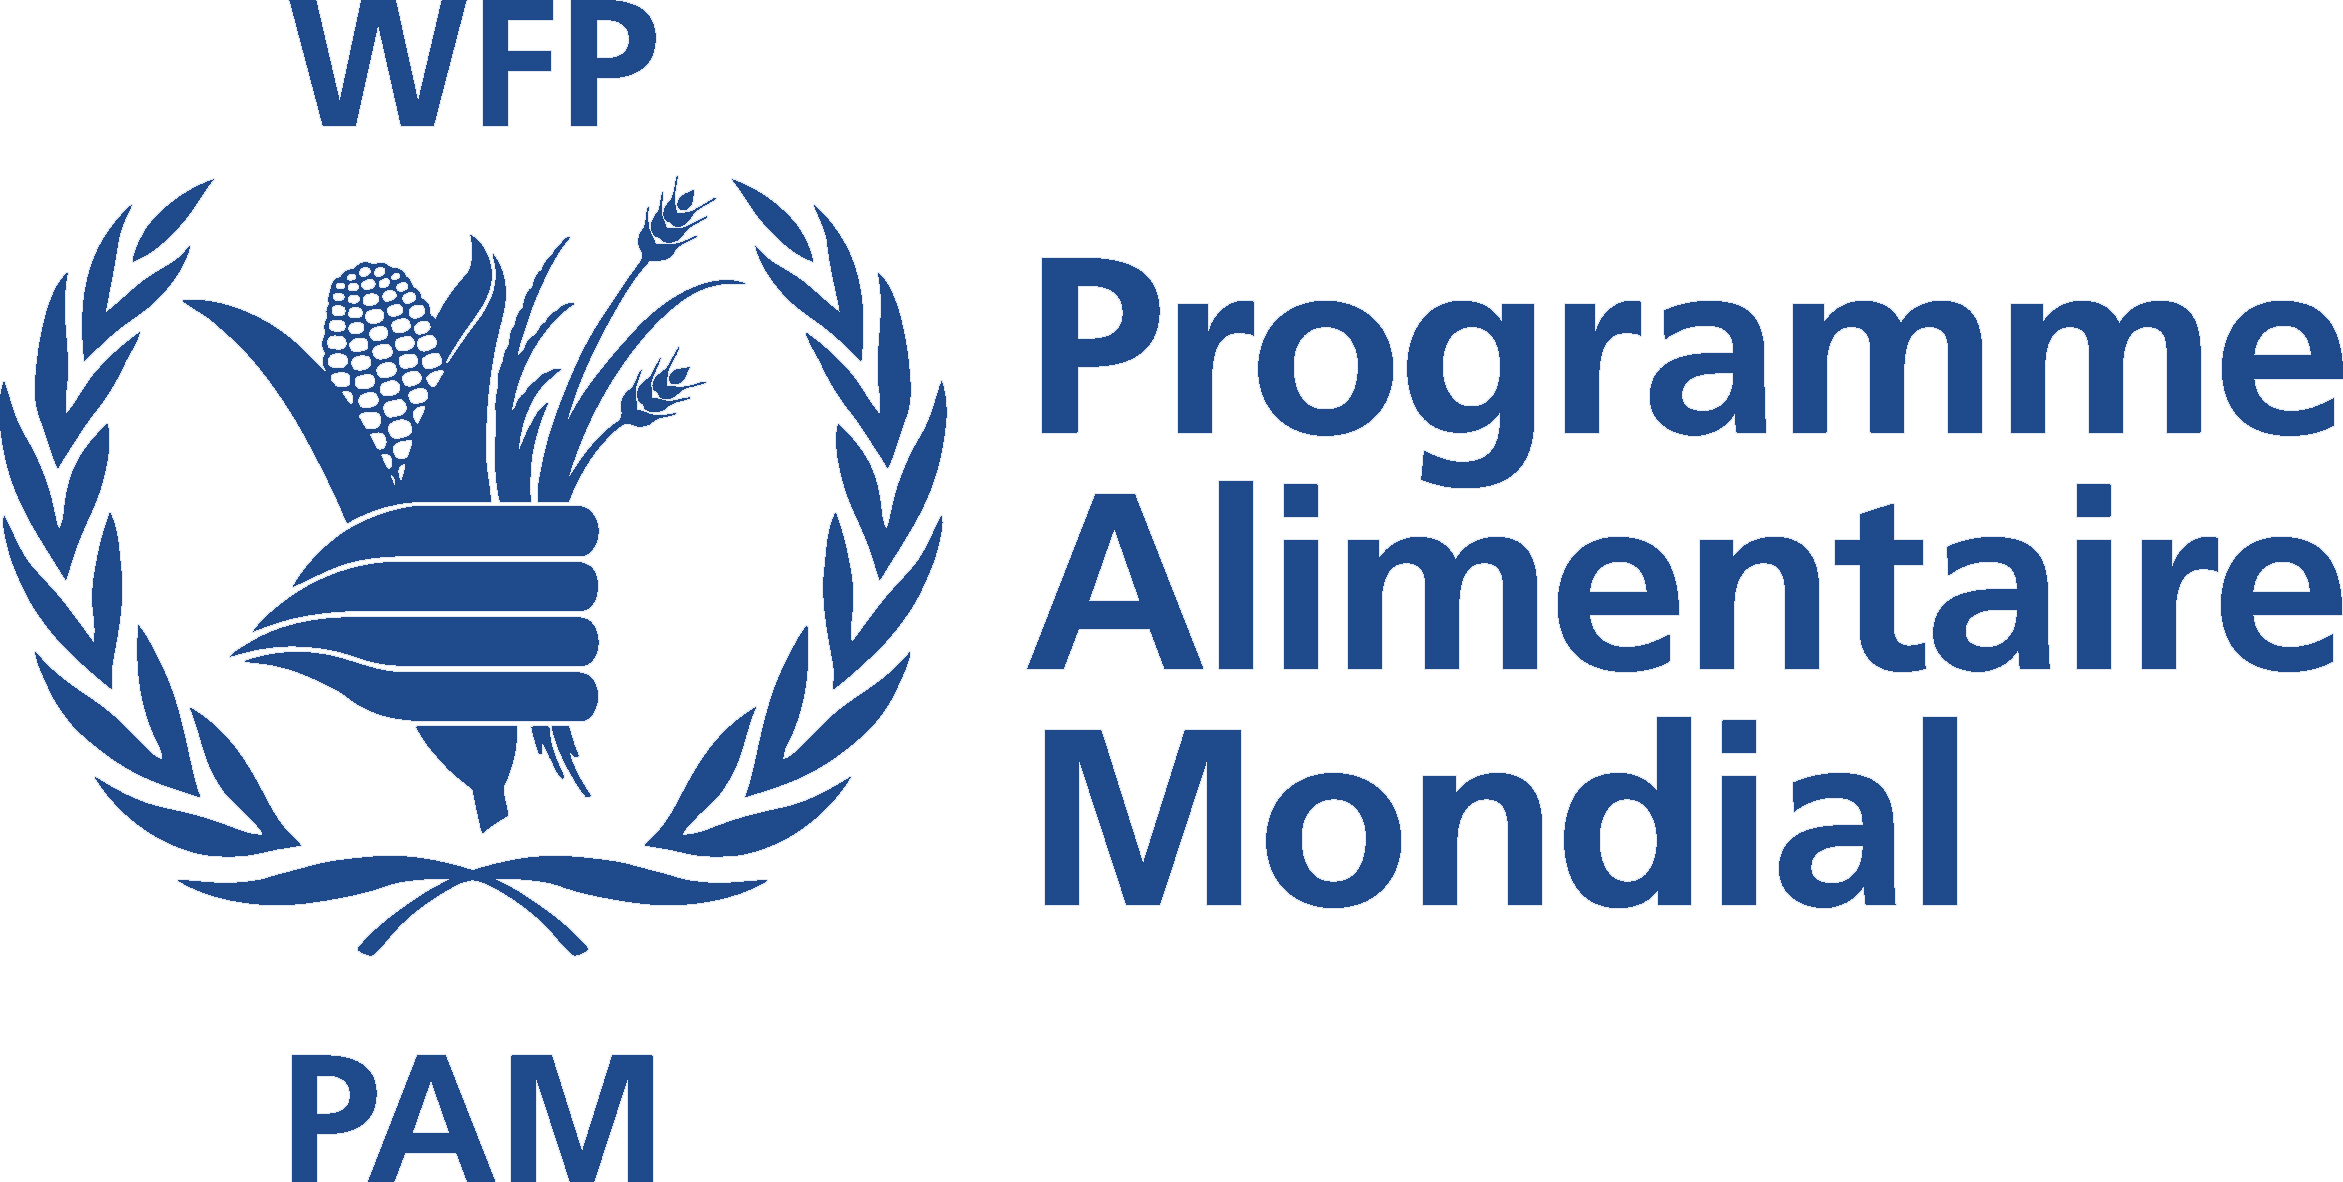 Programme Alimentaire Mondial (PAM) - ACTED